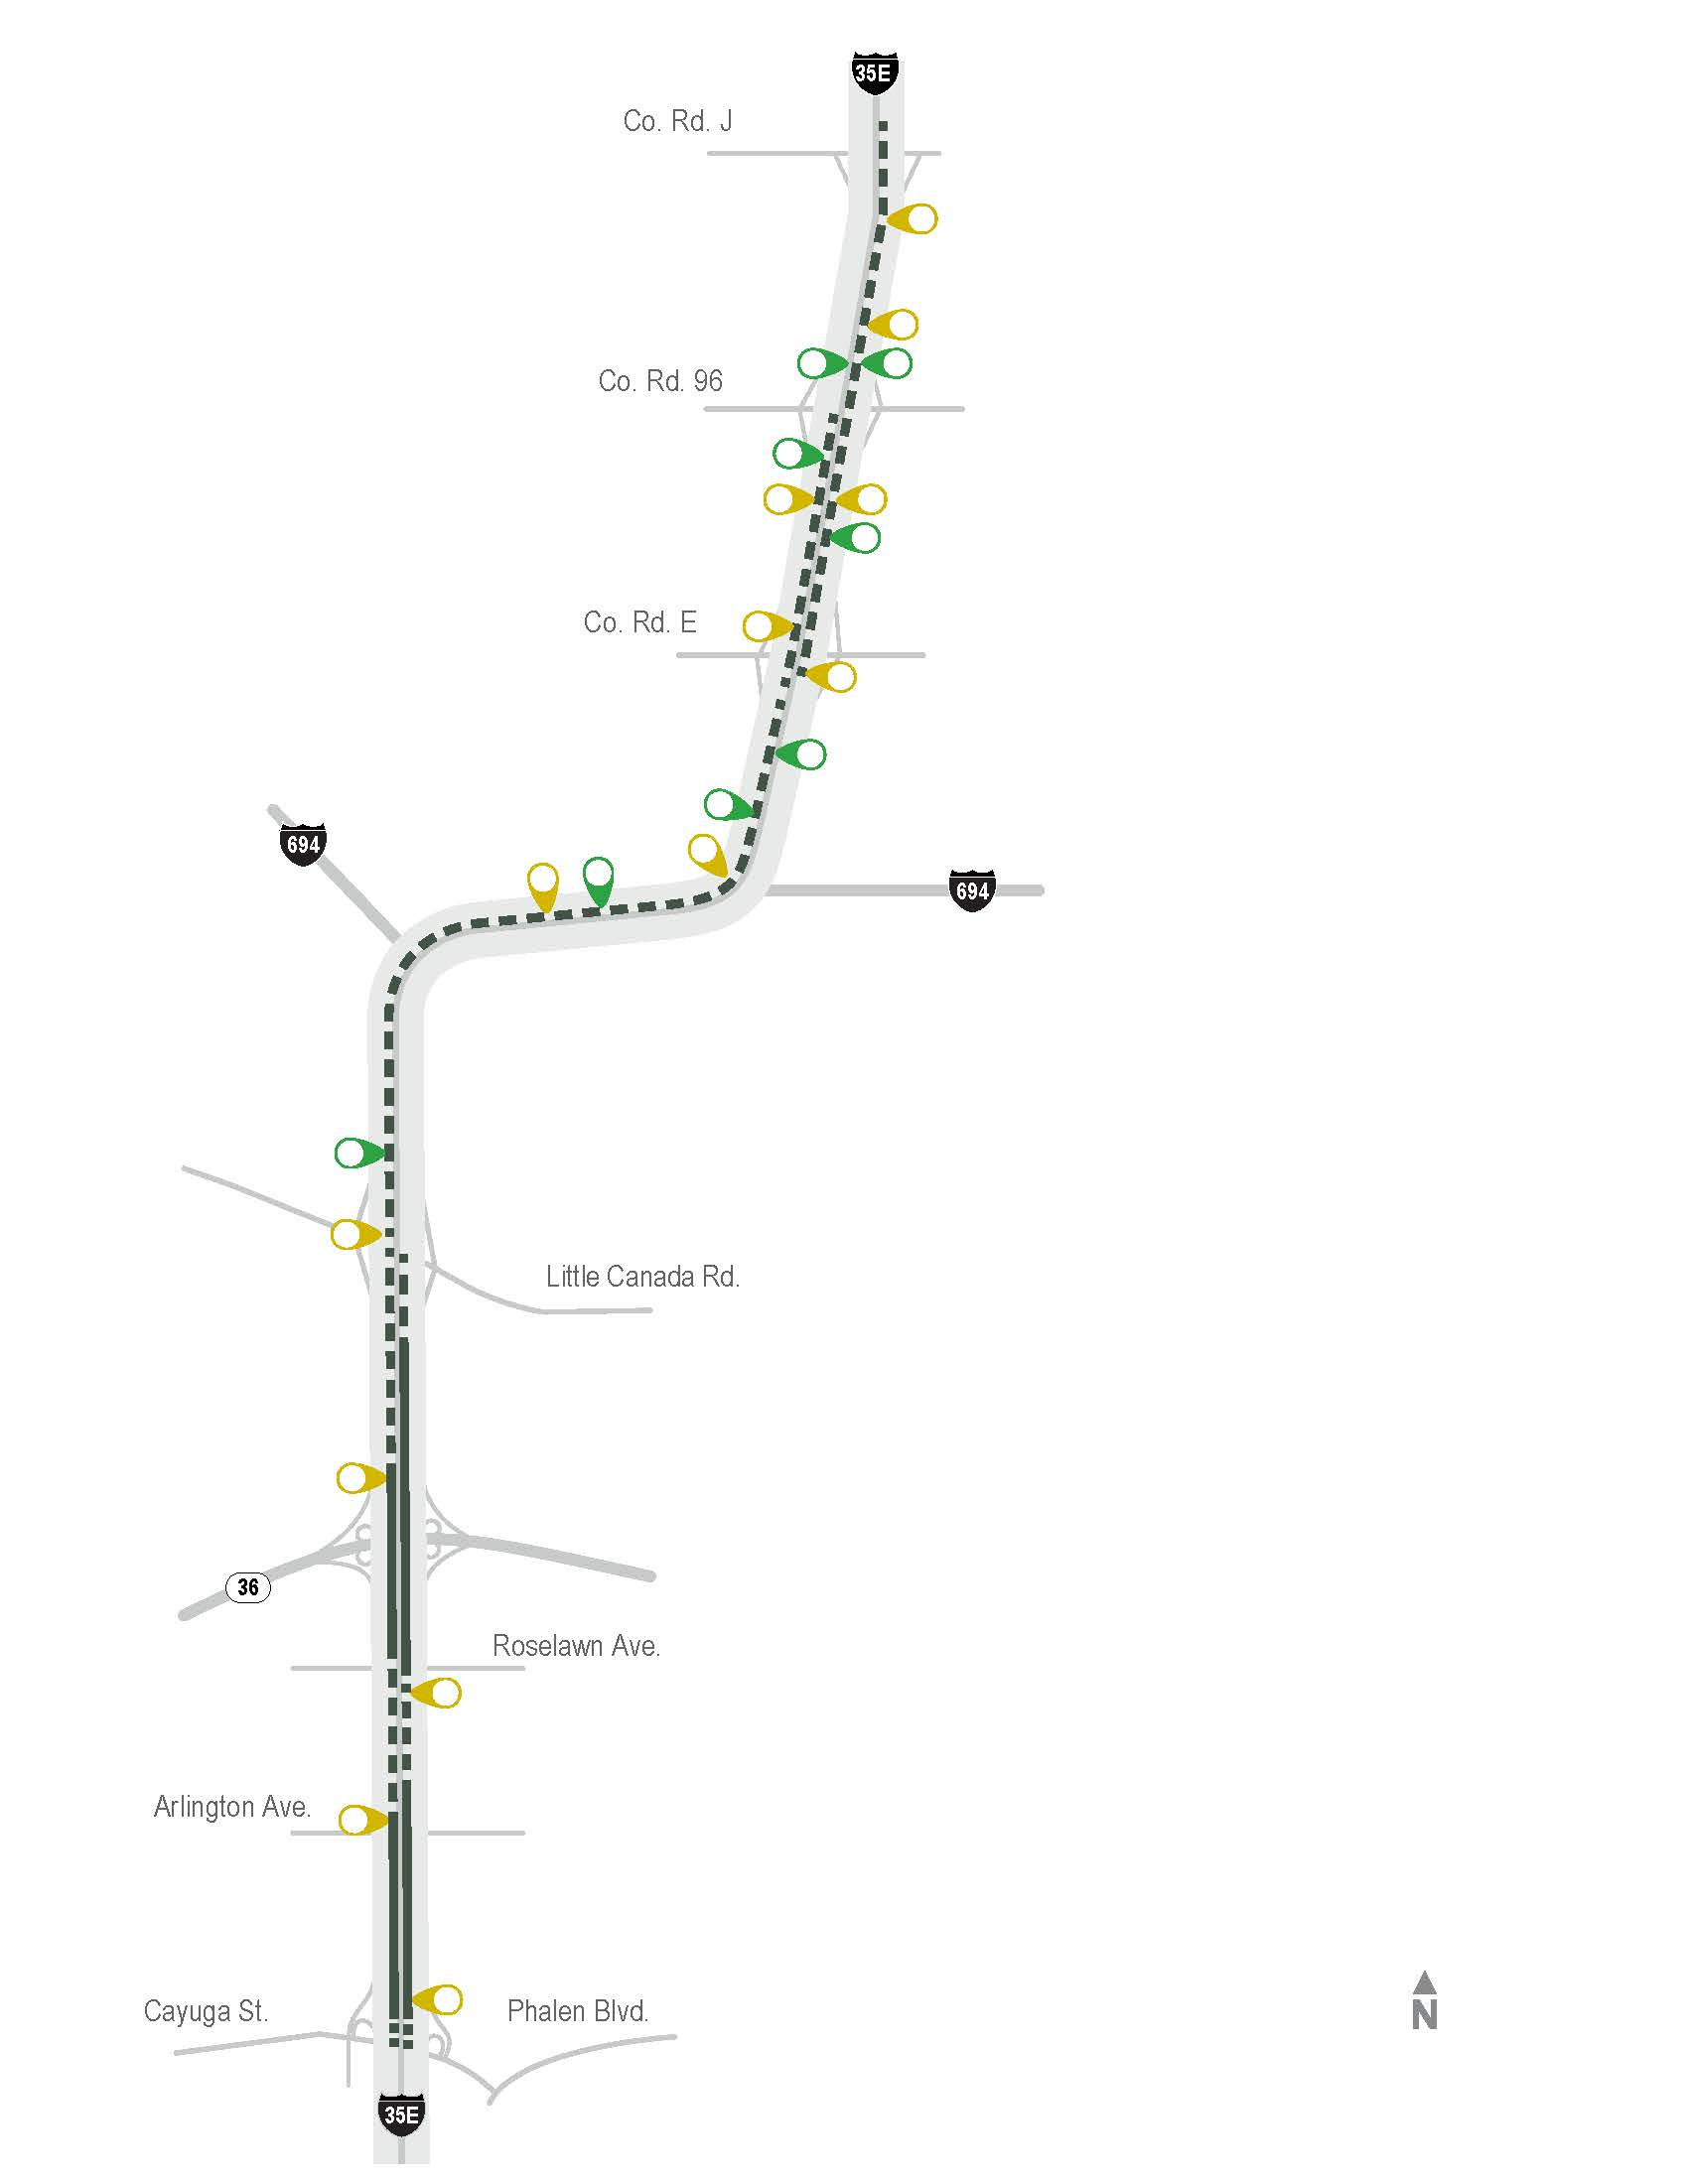 I-394 MnpASS Express Lane Map